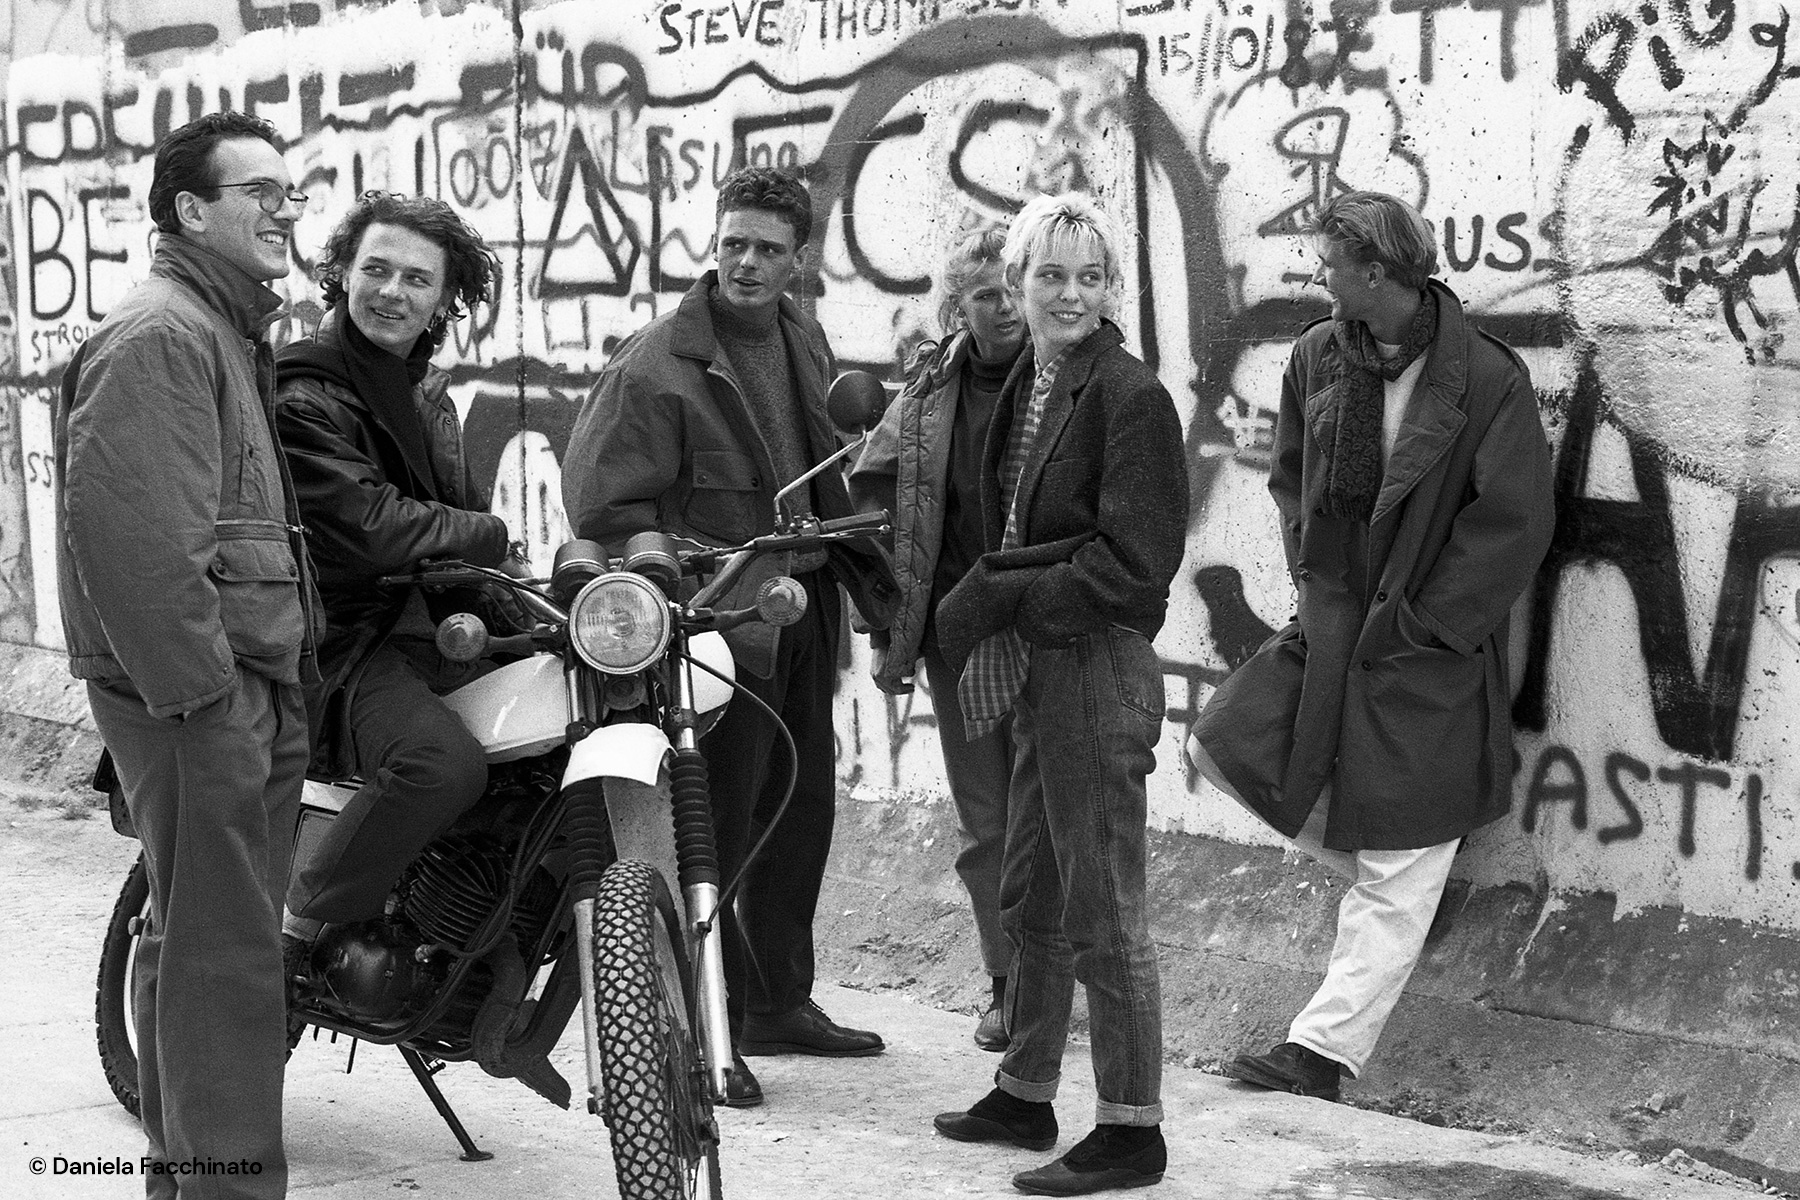 West Berlin 1988. Young people modeling along the wall. Advertising campaign for Massimo Osti